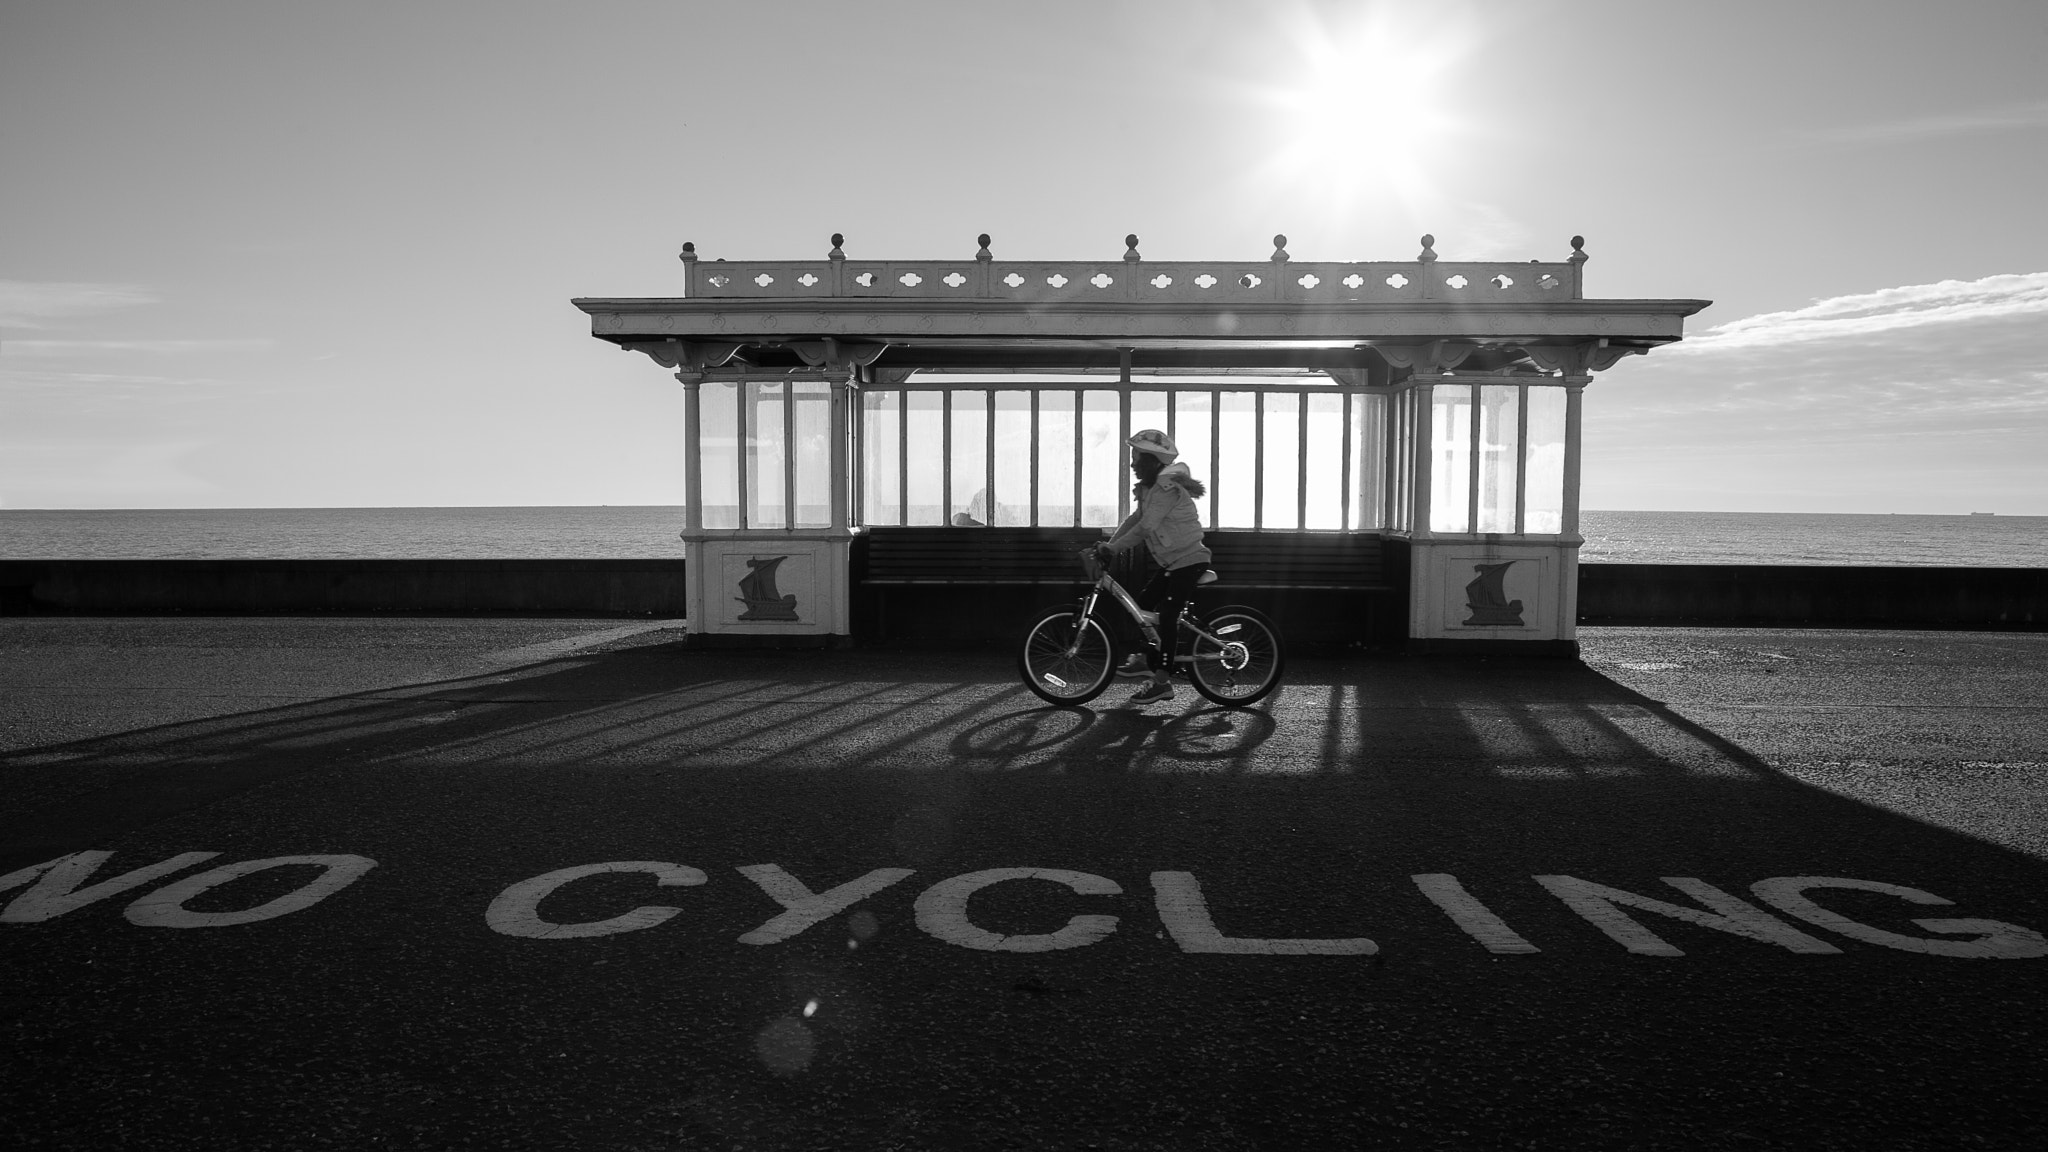 Photograph No Cycling by Dade Freeman on 500px